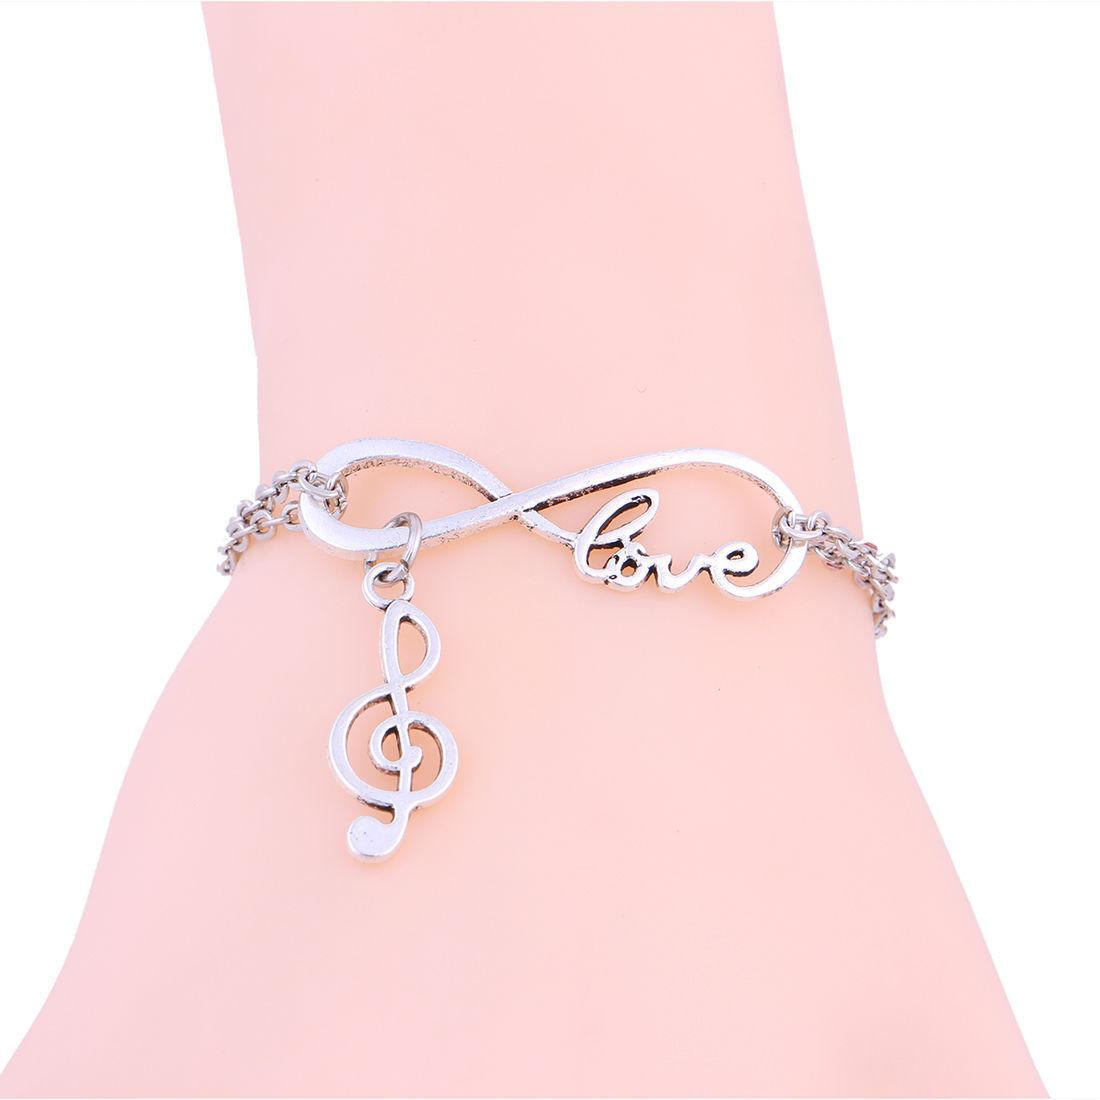 0e26d2c2a915a Hot Sell Antique Silver Infinity Love Music Notation Charms Pendant  Bracelet Fashion Couple Jewelry Best Gift European And American Popular